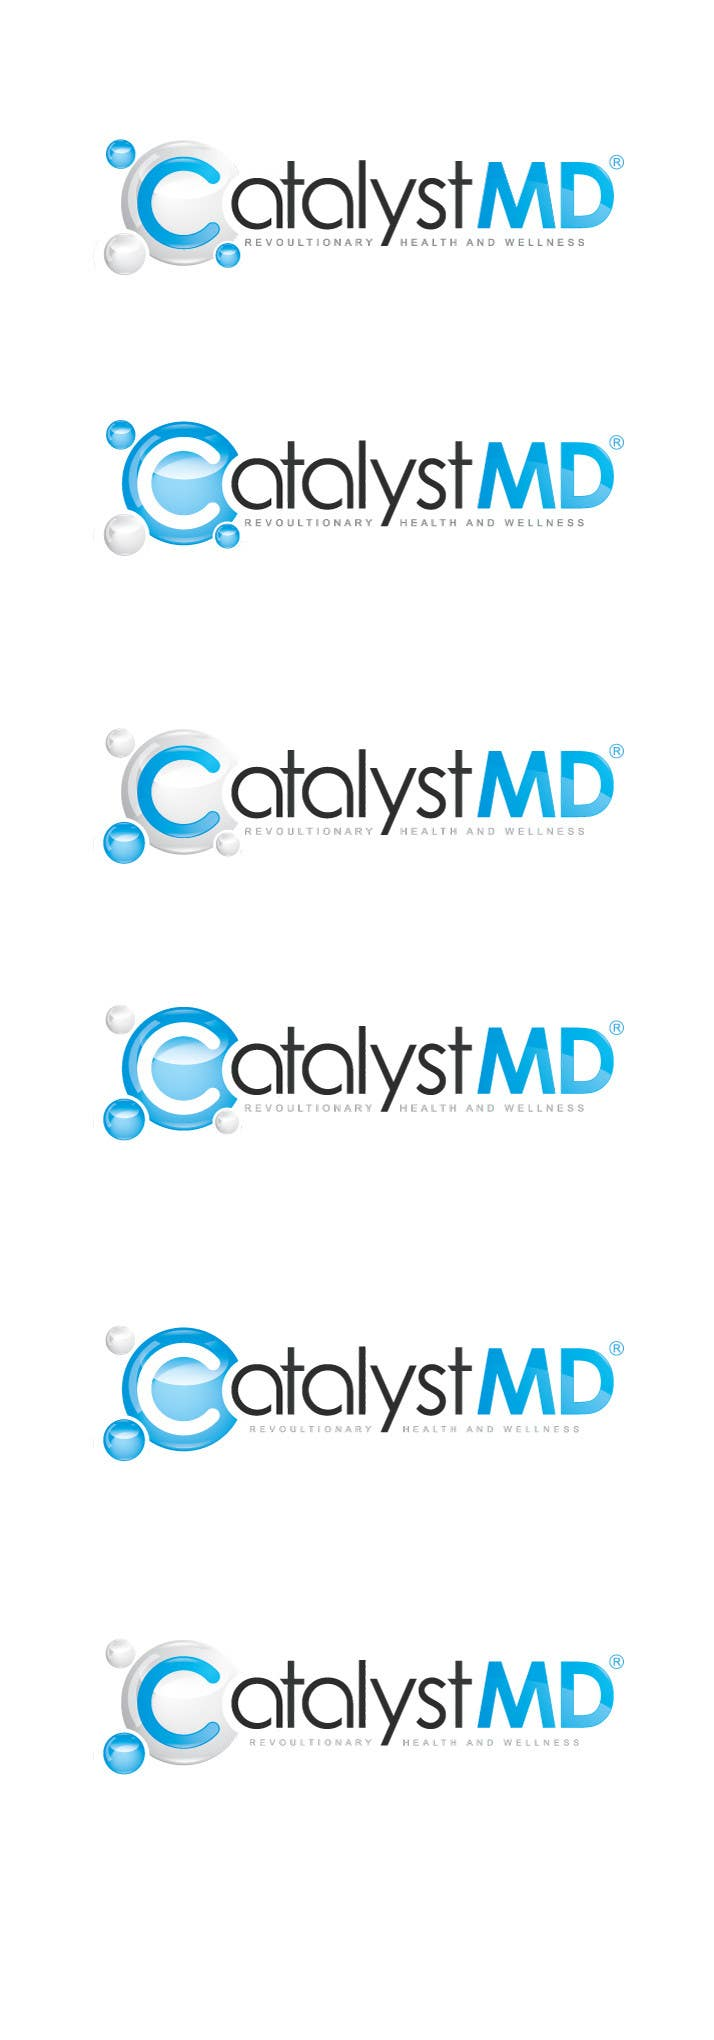 #227 for Logo Design for CatalystMD, Revolutionary Health and Wellness. by pixel11